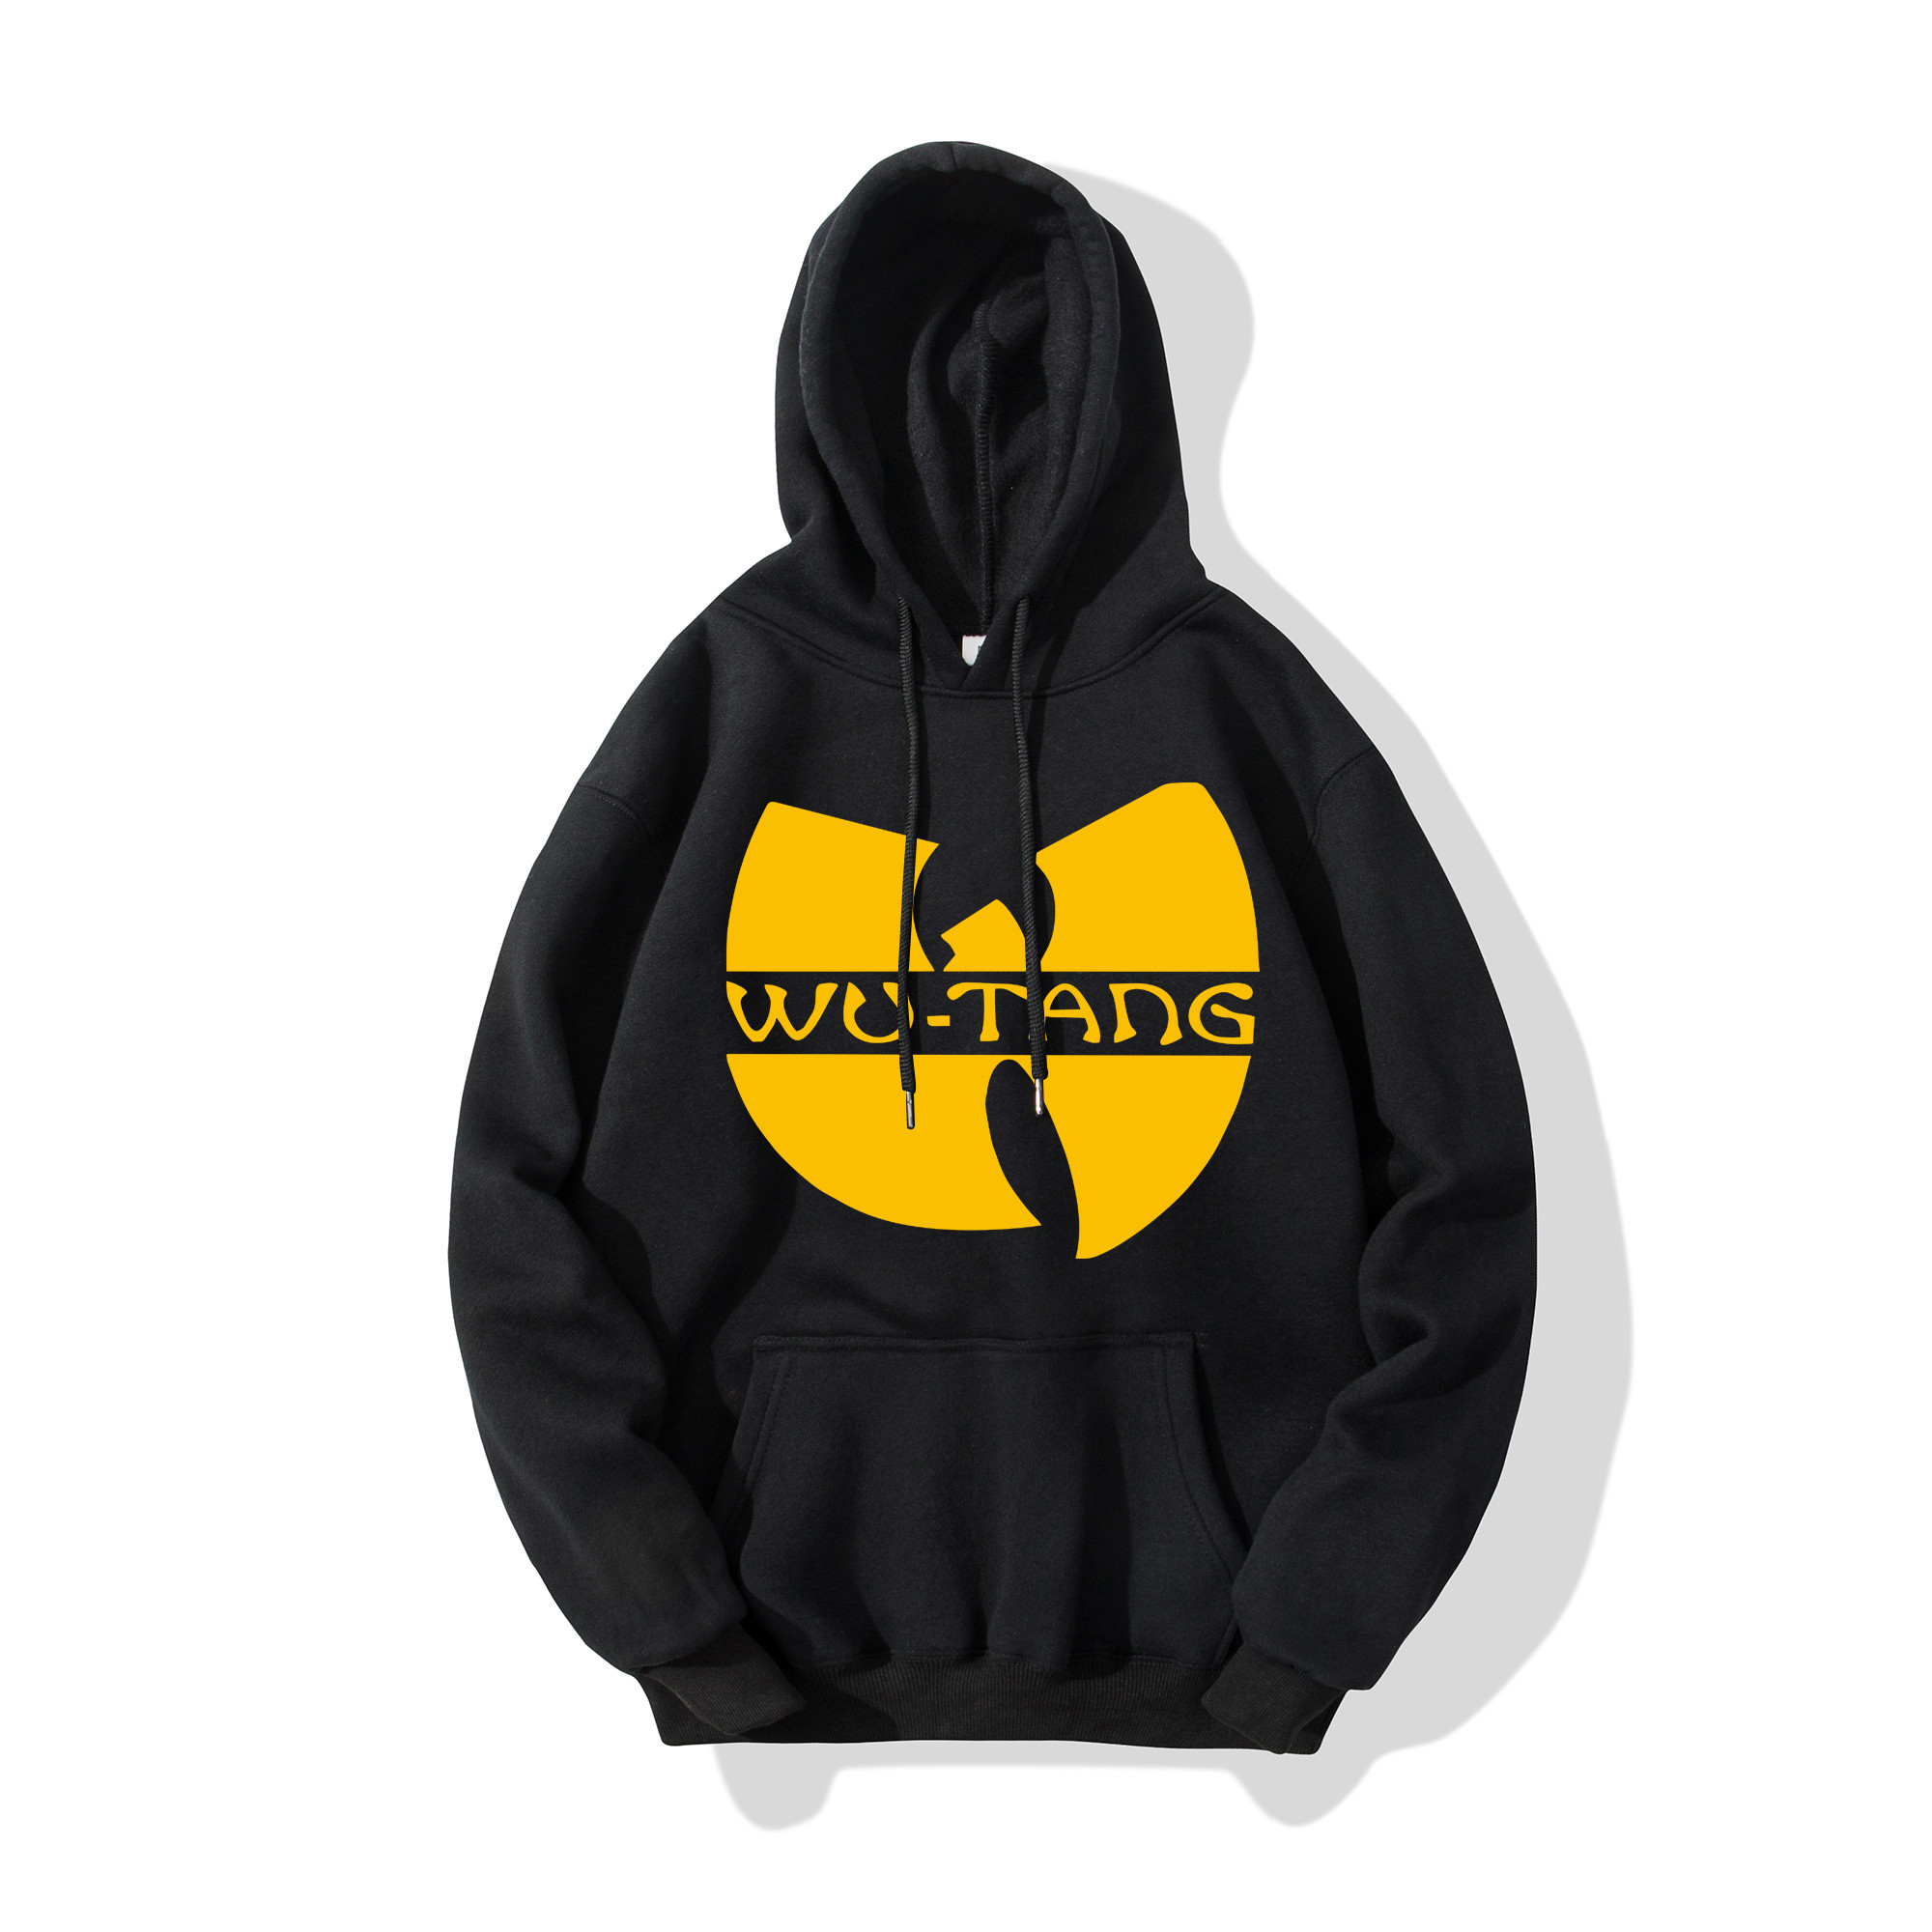 Wu Tang Clan Hoodie Fashion Hip Hop Band Logo Design Hoodies Fashion Hooded Long Sleeve Sweatshirt Rap Music Tops